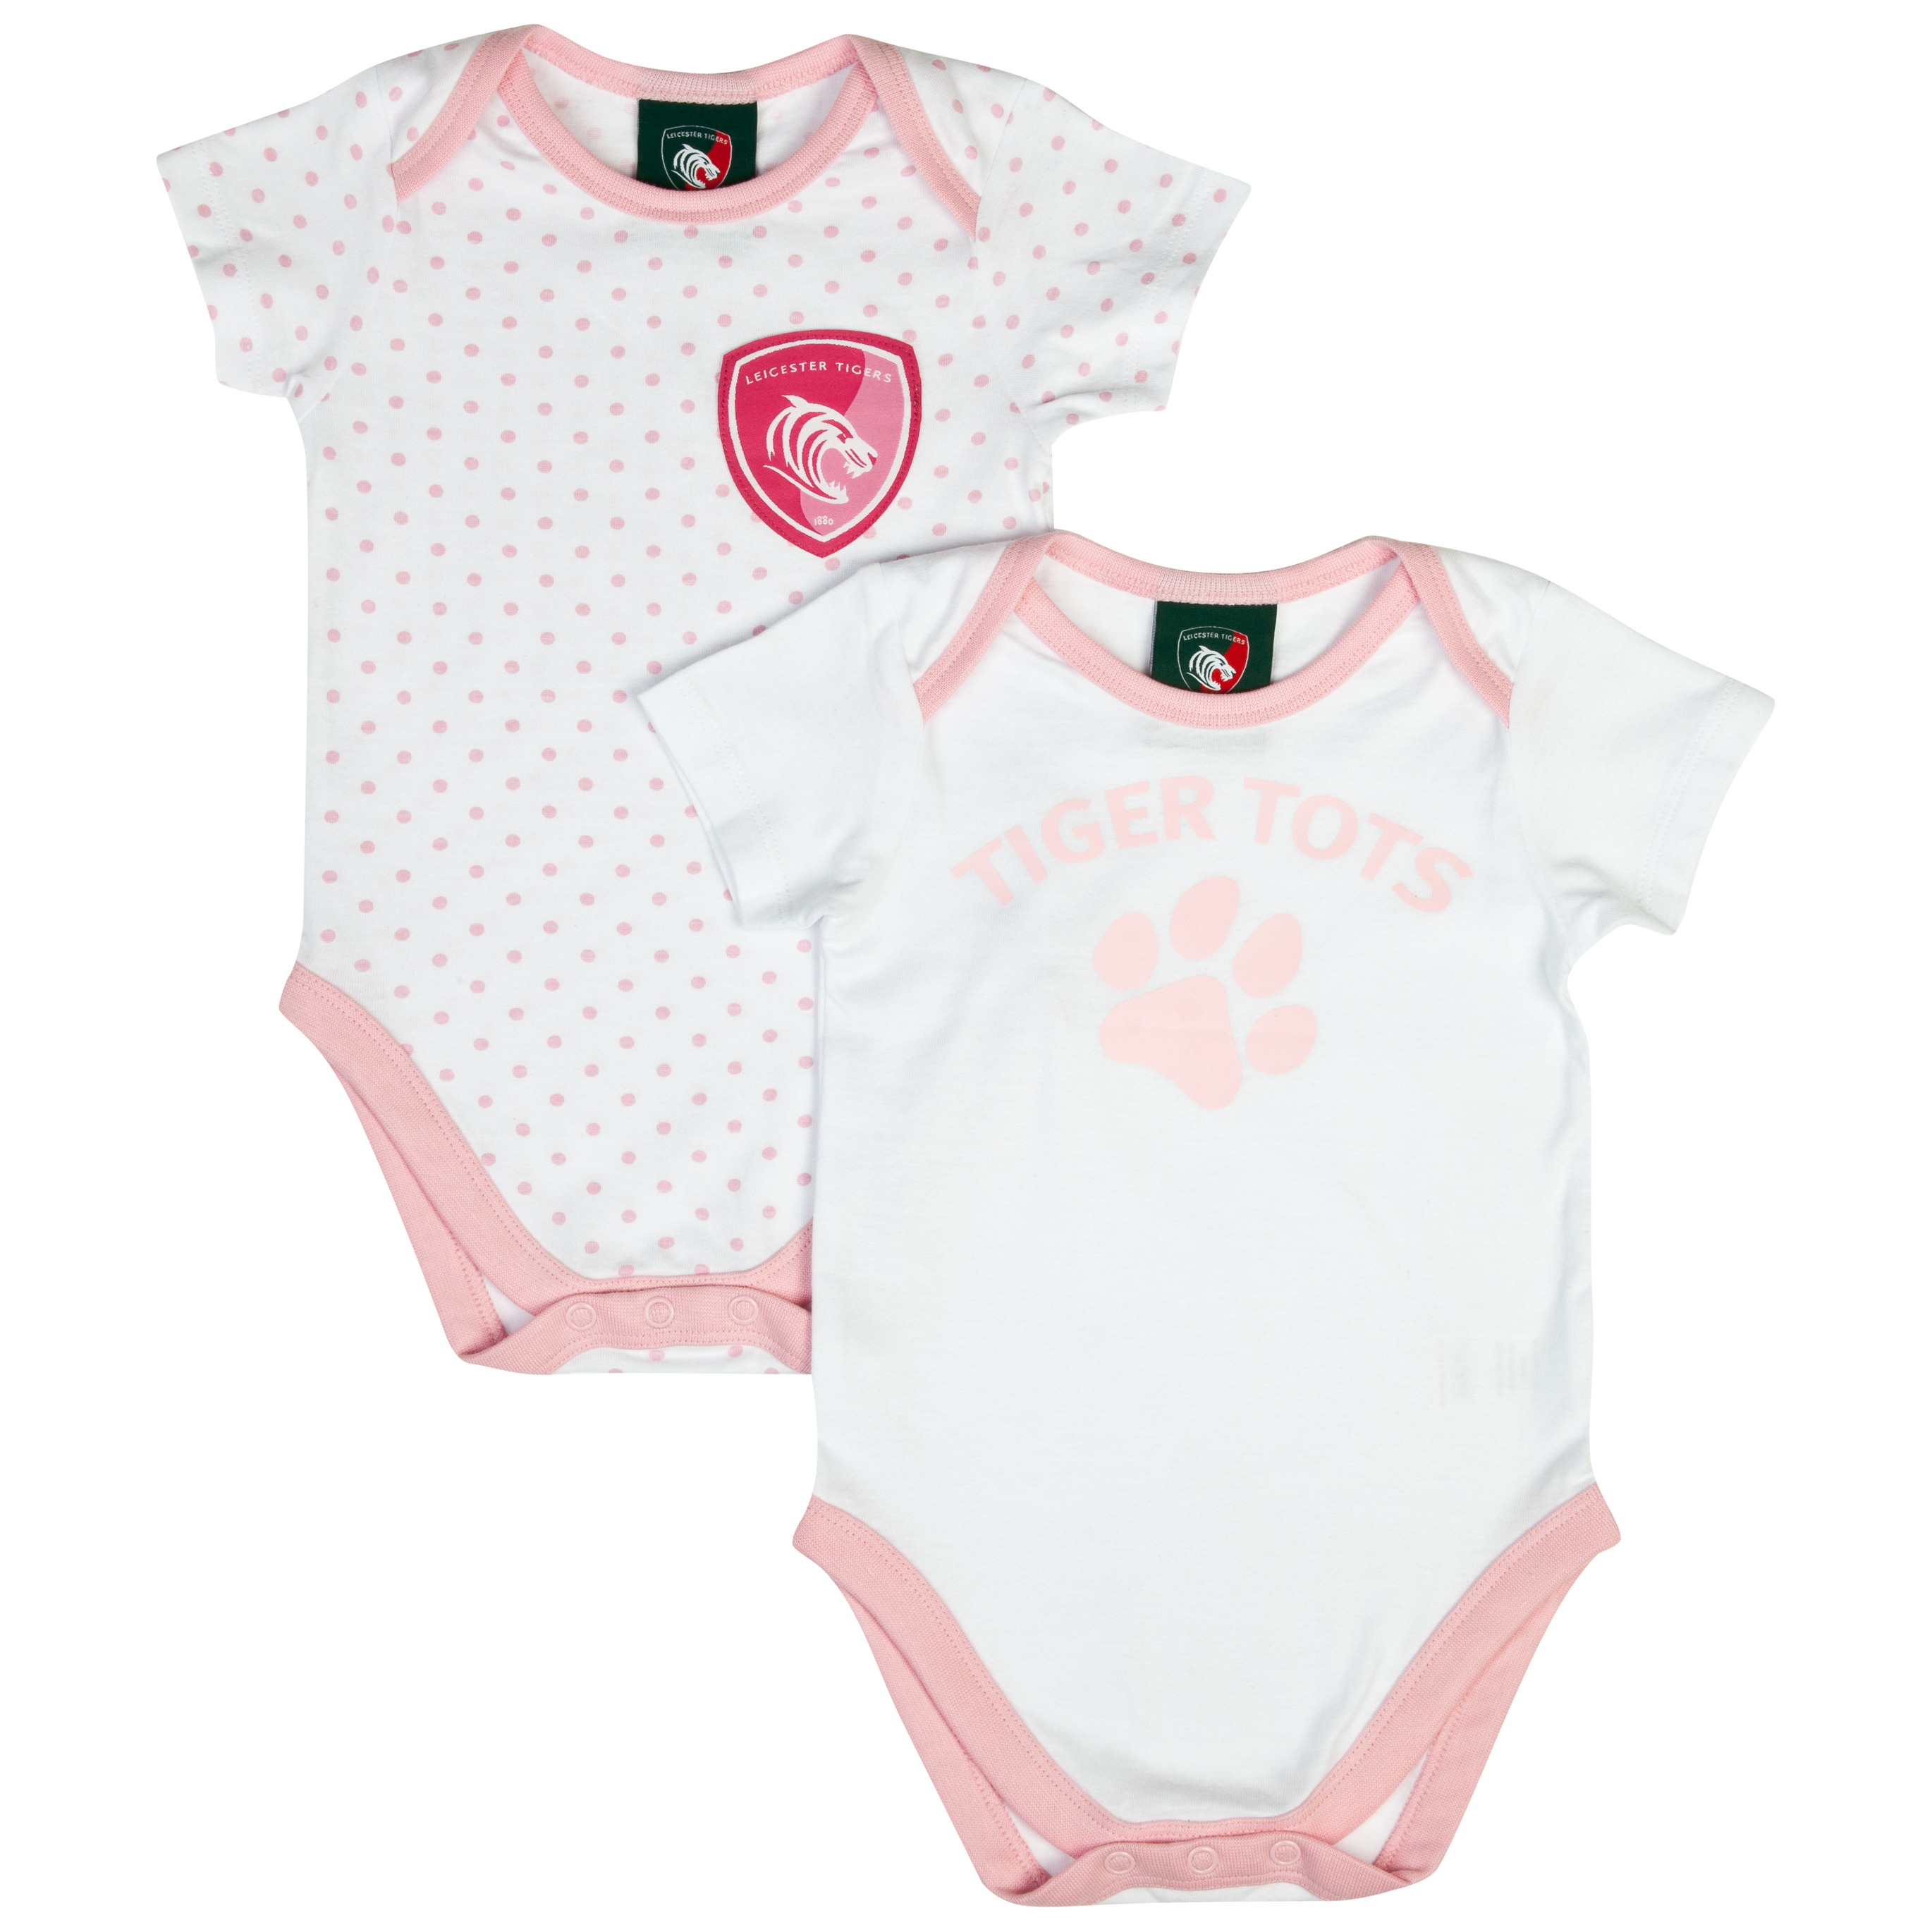 Leicester Tigers Pack of 2 Pawprint Bodysuits - White/Pink - Baby. for 14€